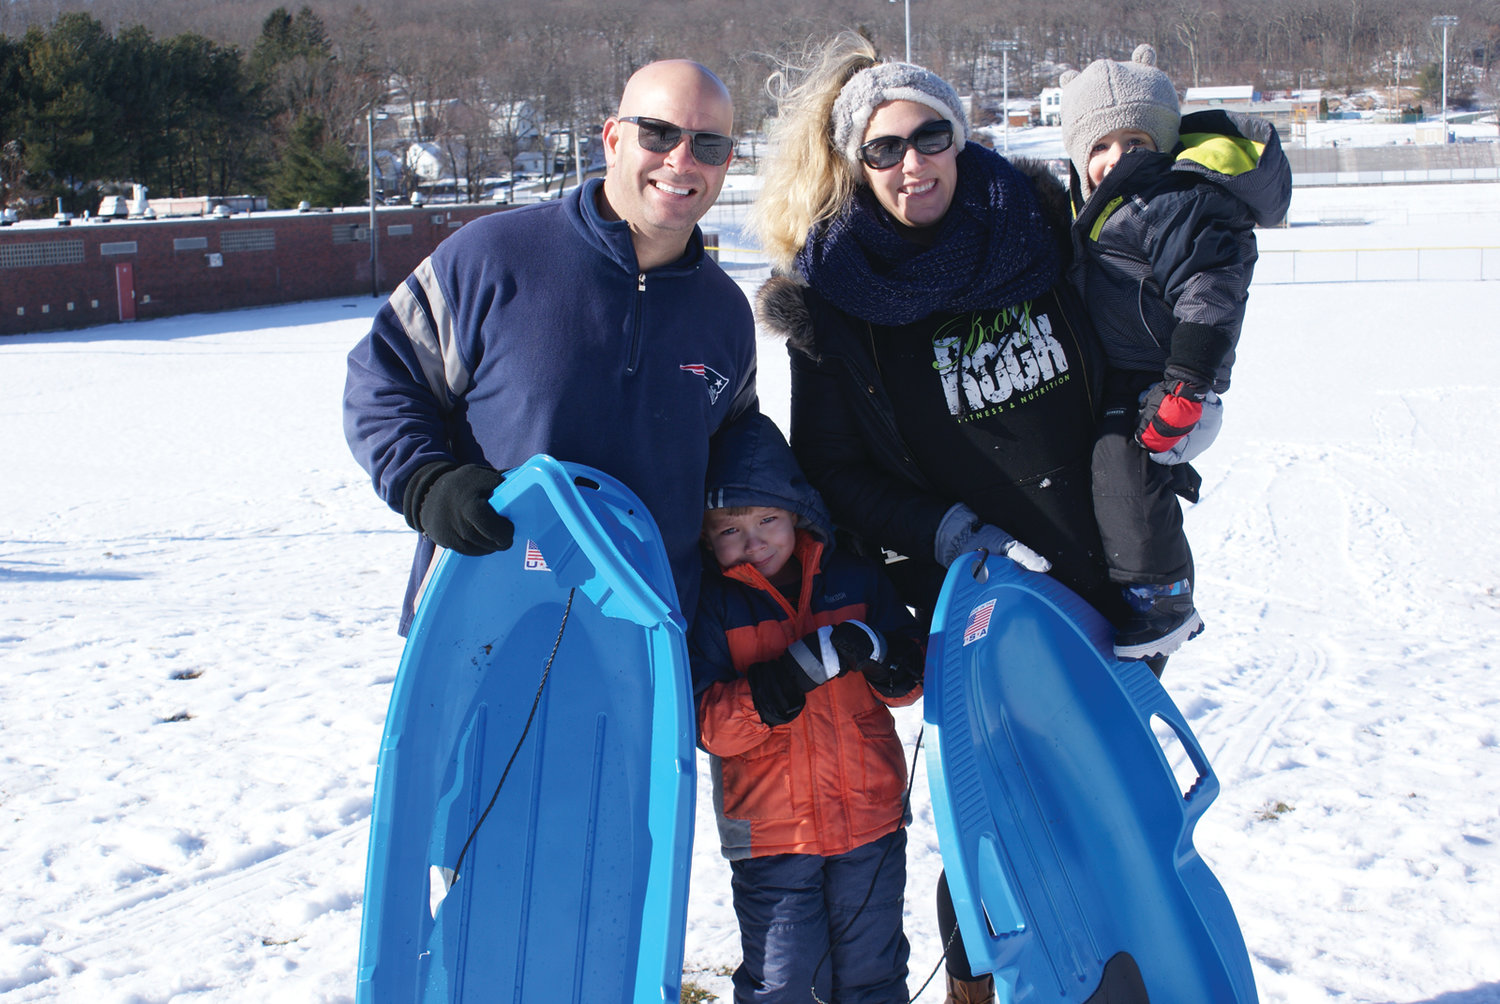 SLEDDING FAMILY: Among the Sunday morning sledders were the members of the Kyriakakis family of Cranston – Jennifer, Michael and their sons, Christian, 4, and Niko, 1.